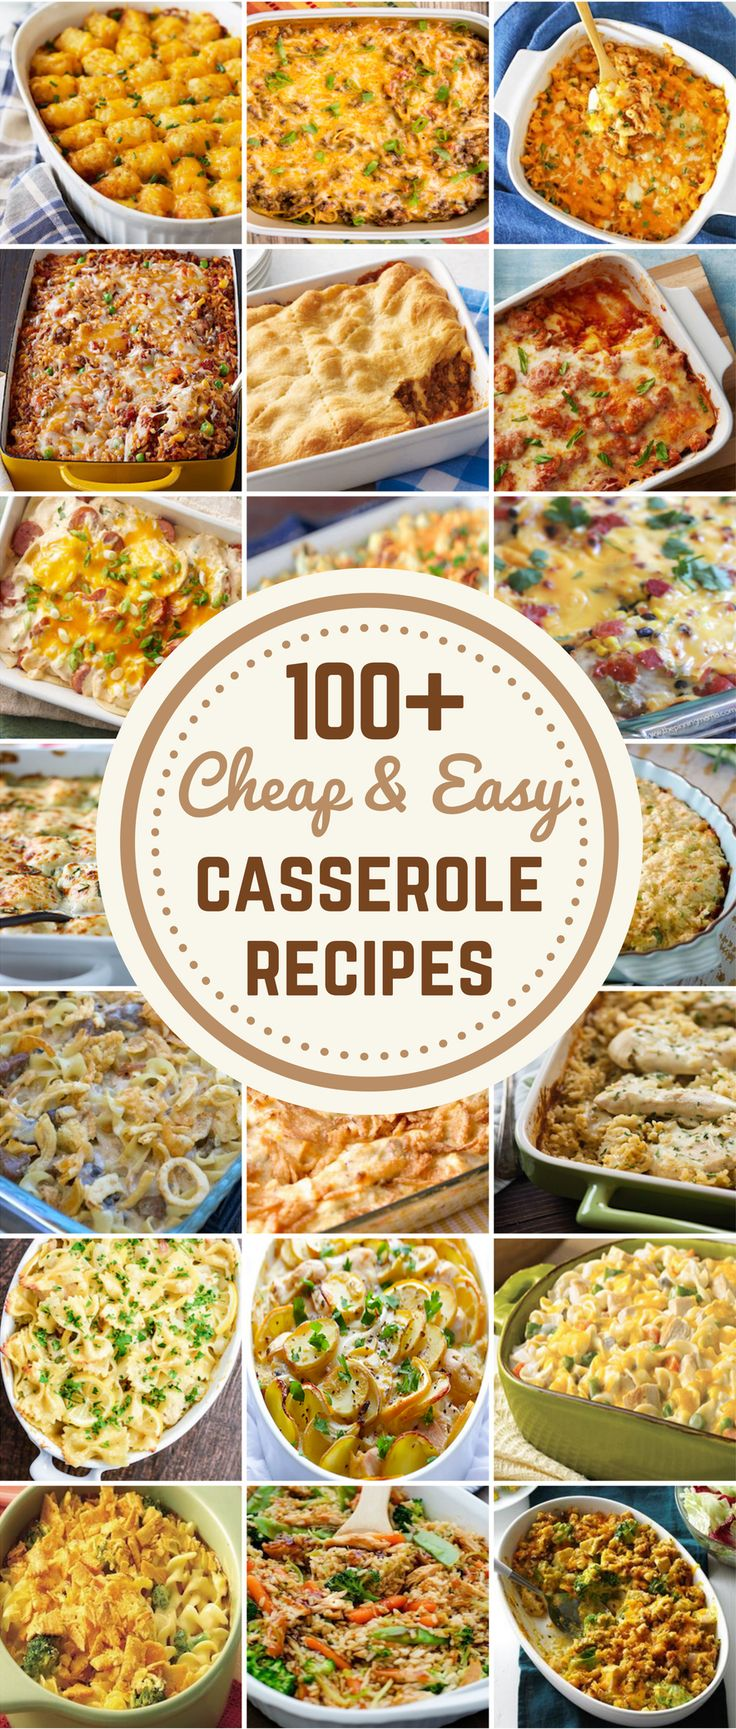 These casserole recipes arecheap, easy to make and will feed a crowd. Many of these recipes are great make-ahead options, making them perfect for busy week nights.Whether you want something hearty, healthy, vegetarian or kid-friendly, there is something herefor everyone! BeefCasserole Recipes Tater Tot Casserole from Kraft Sloppy Joe Casserolefrom Cravings of a Lunatic Taco … … Continue reading →